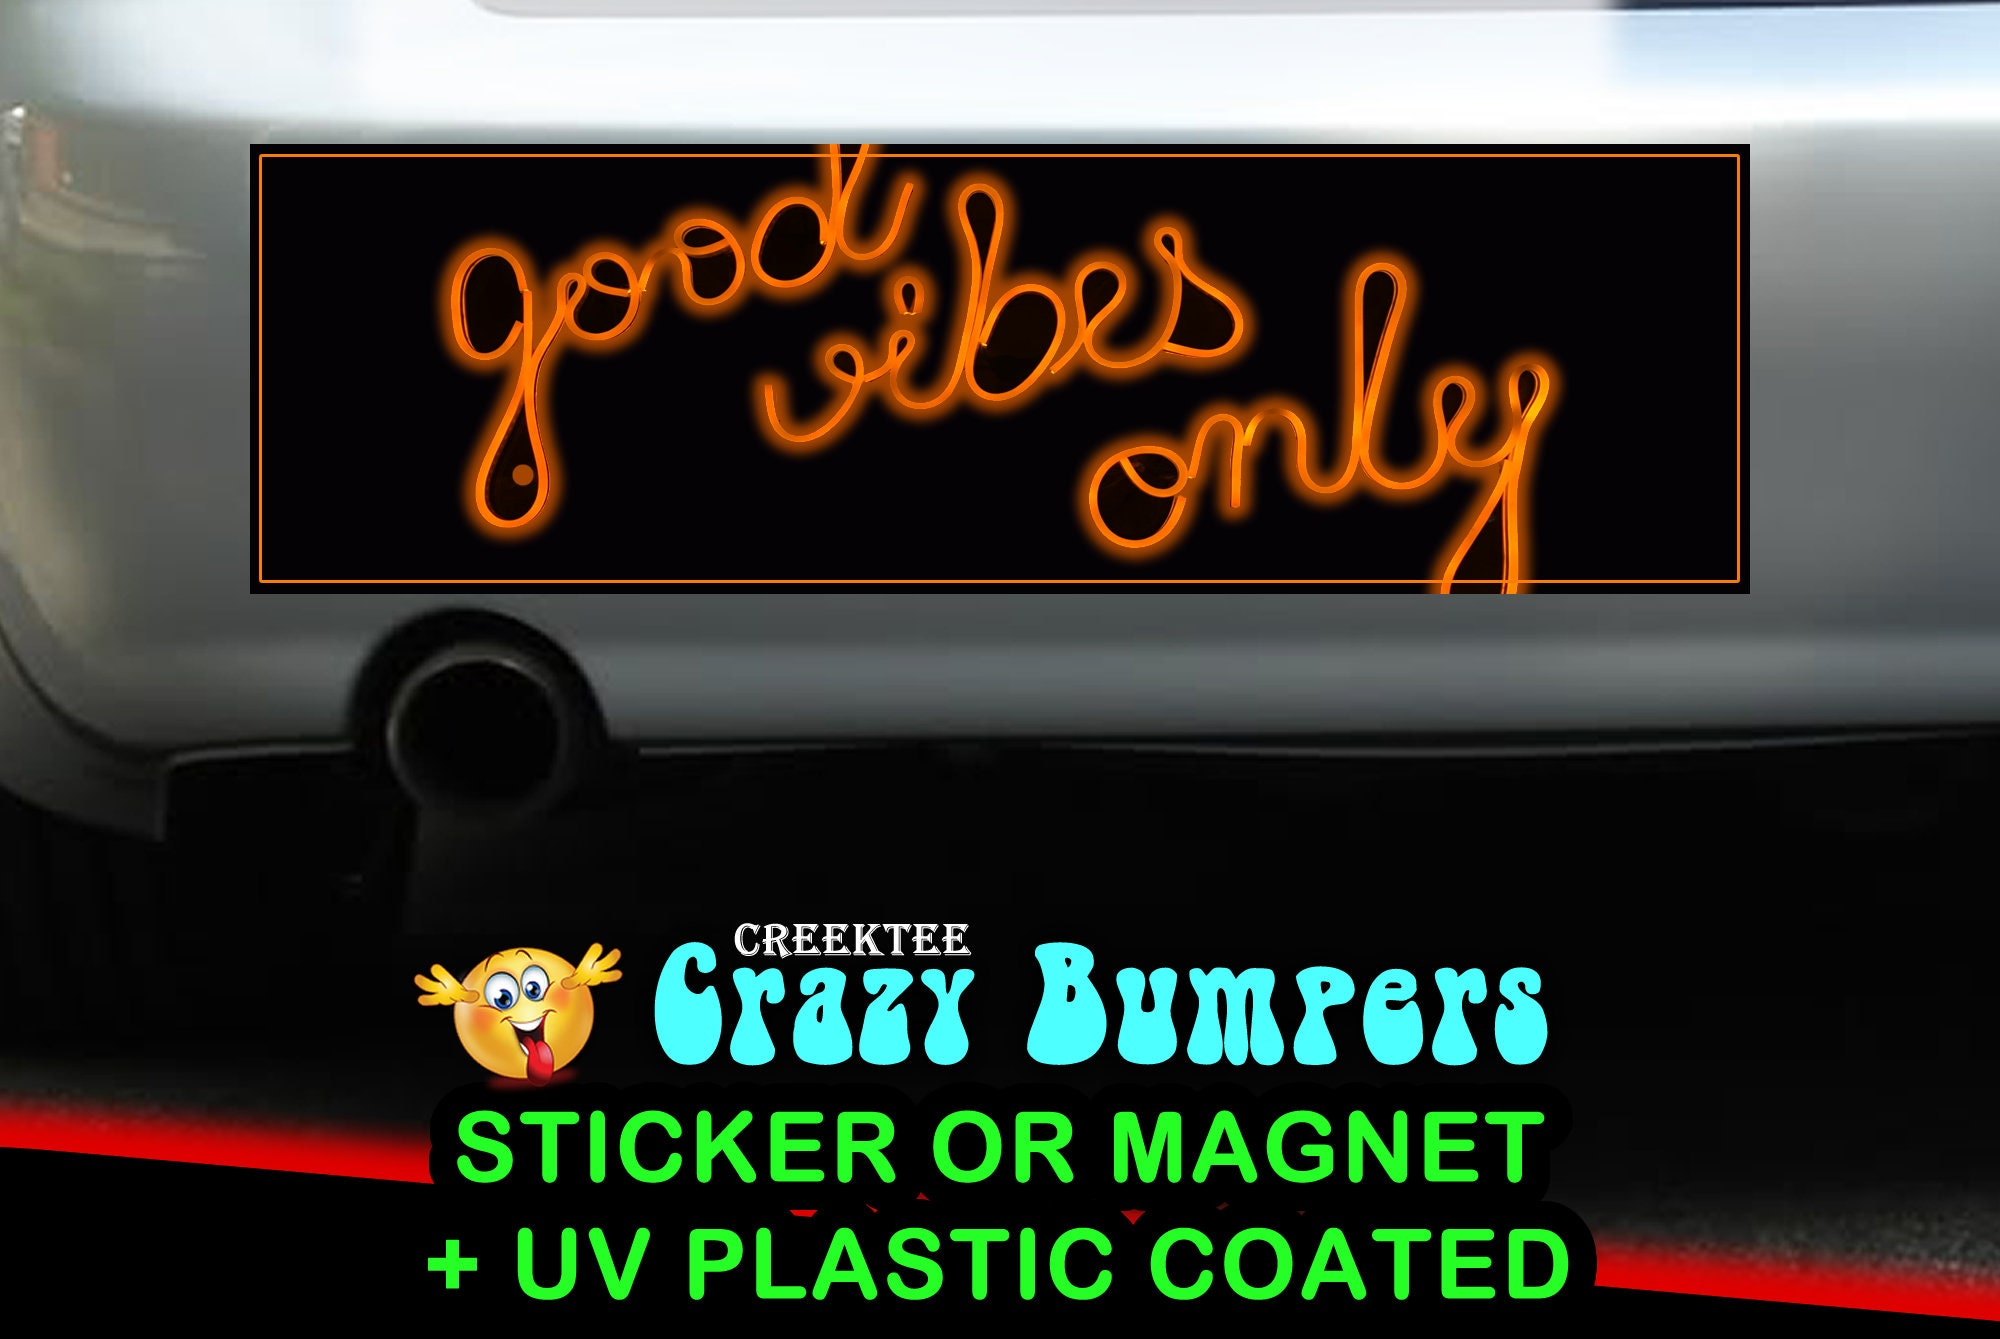 CAD$7.99 - Good Vibes Only 10 x 3 Bumper Sticker or Magnet - Custom changes and orders welcomed!